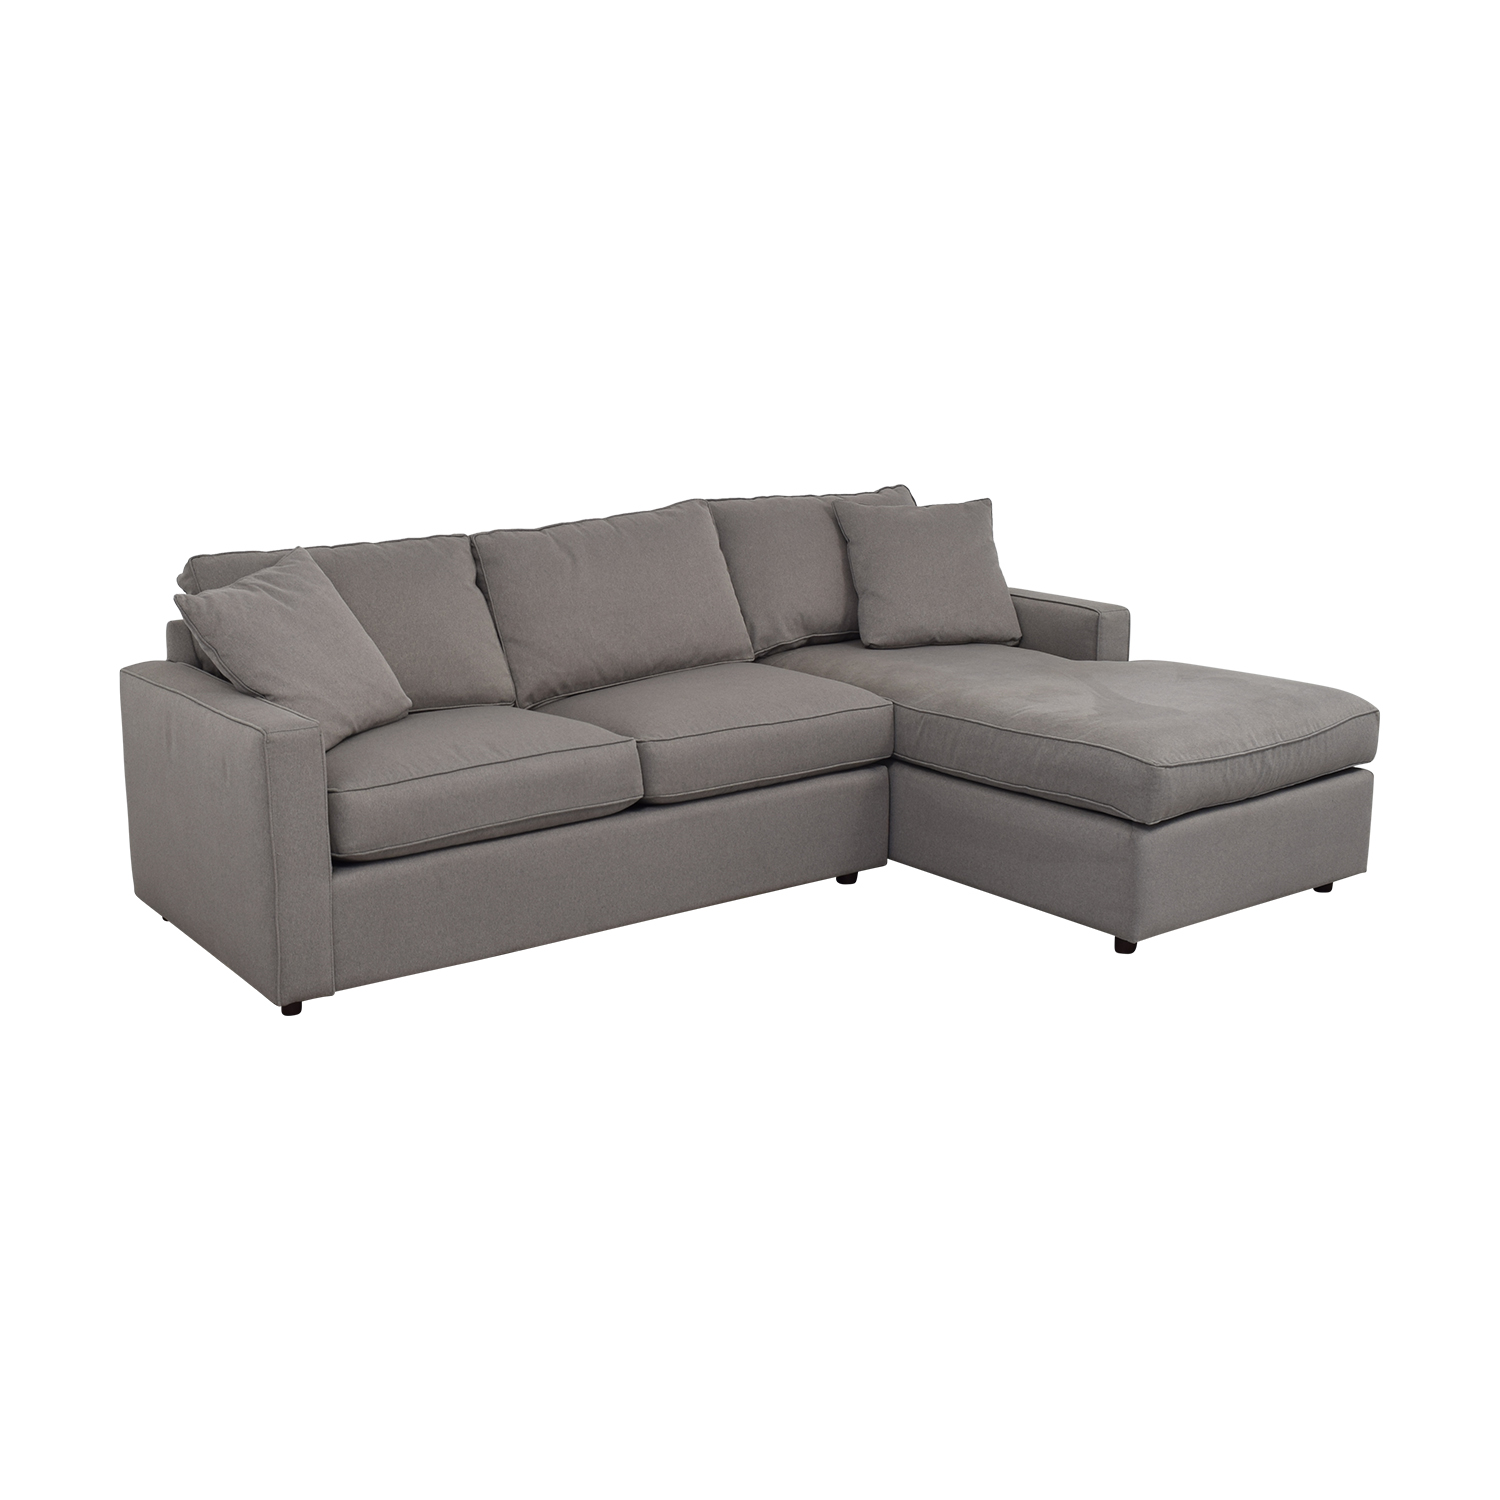 Room & Board Room & Board York Sofa with Chaise nyc